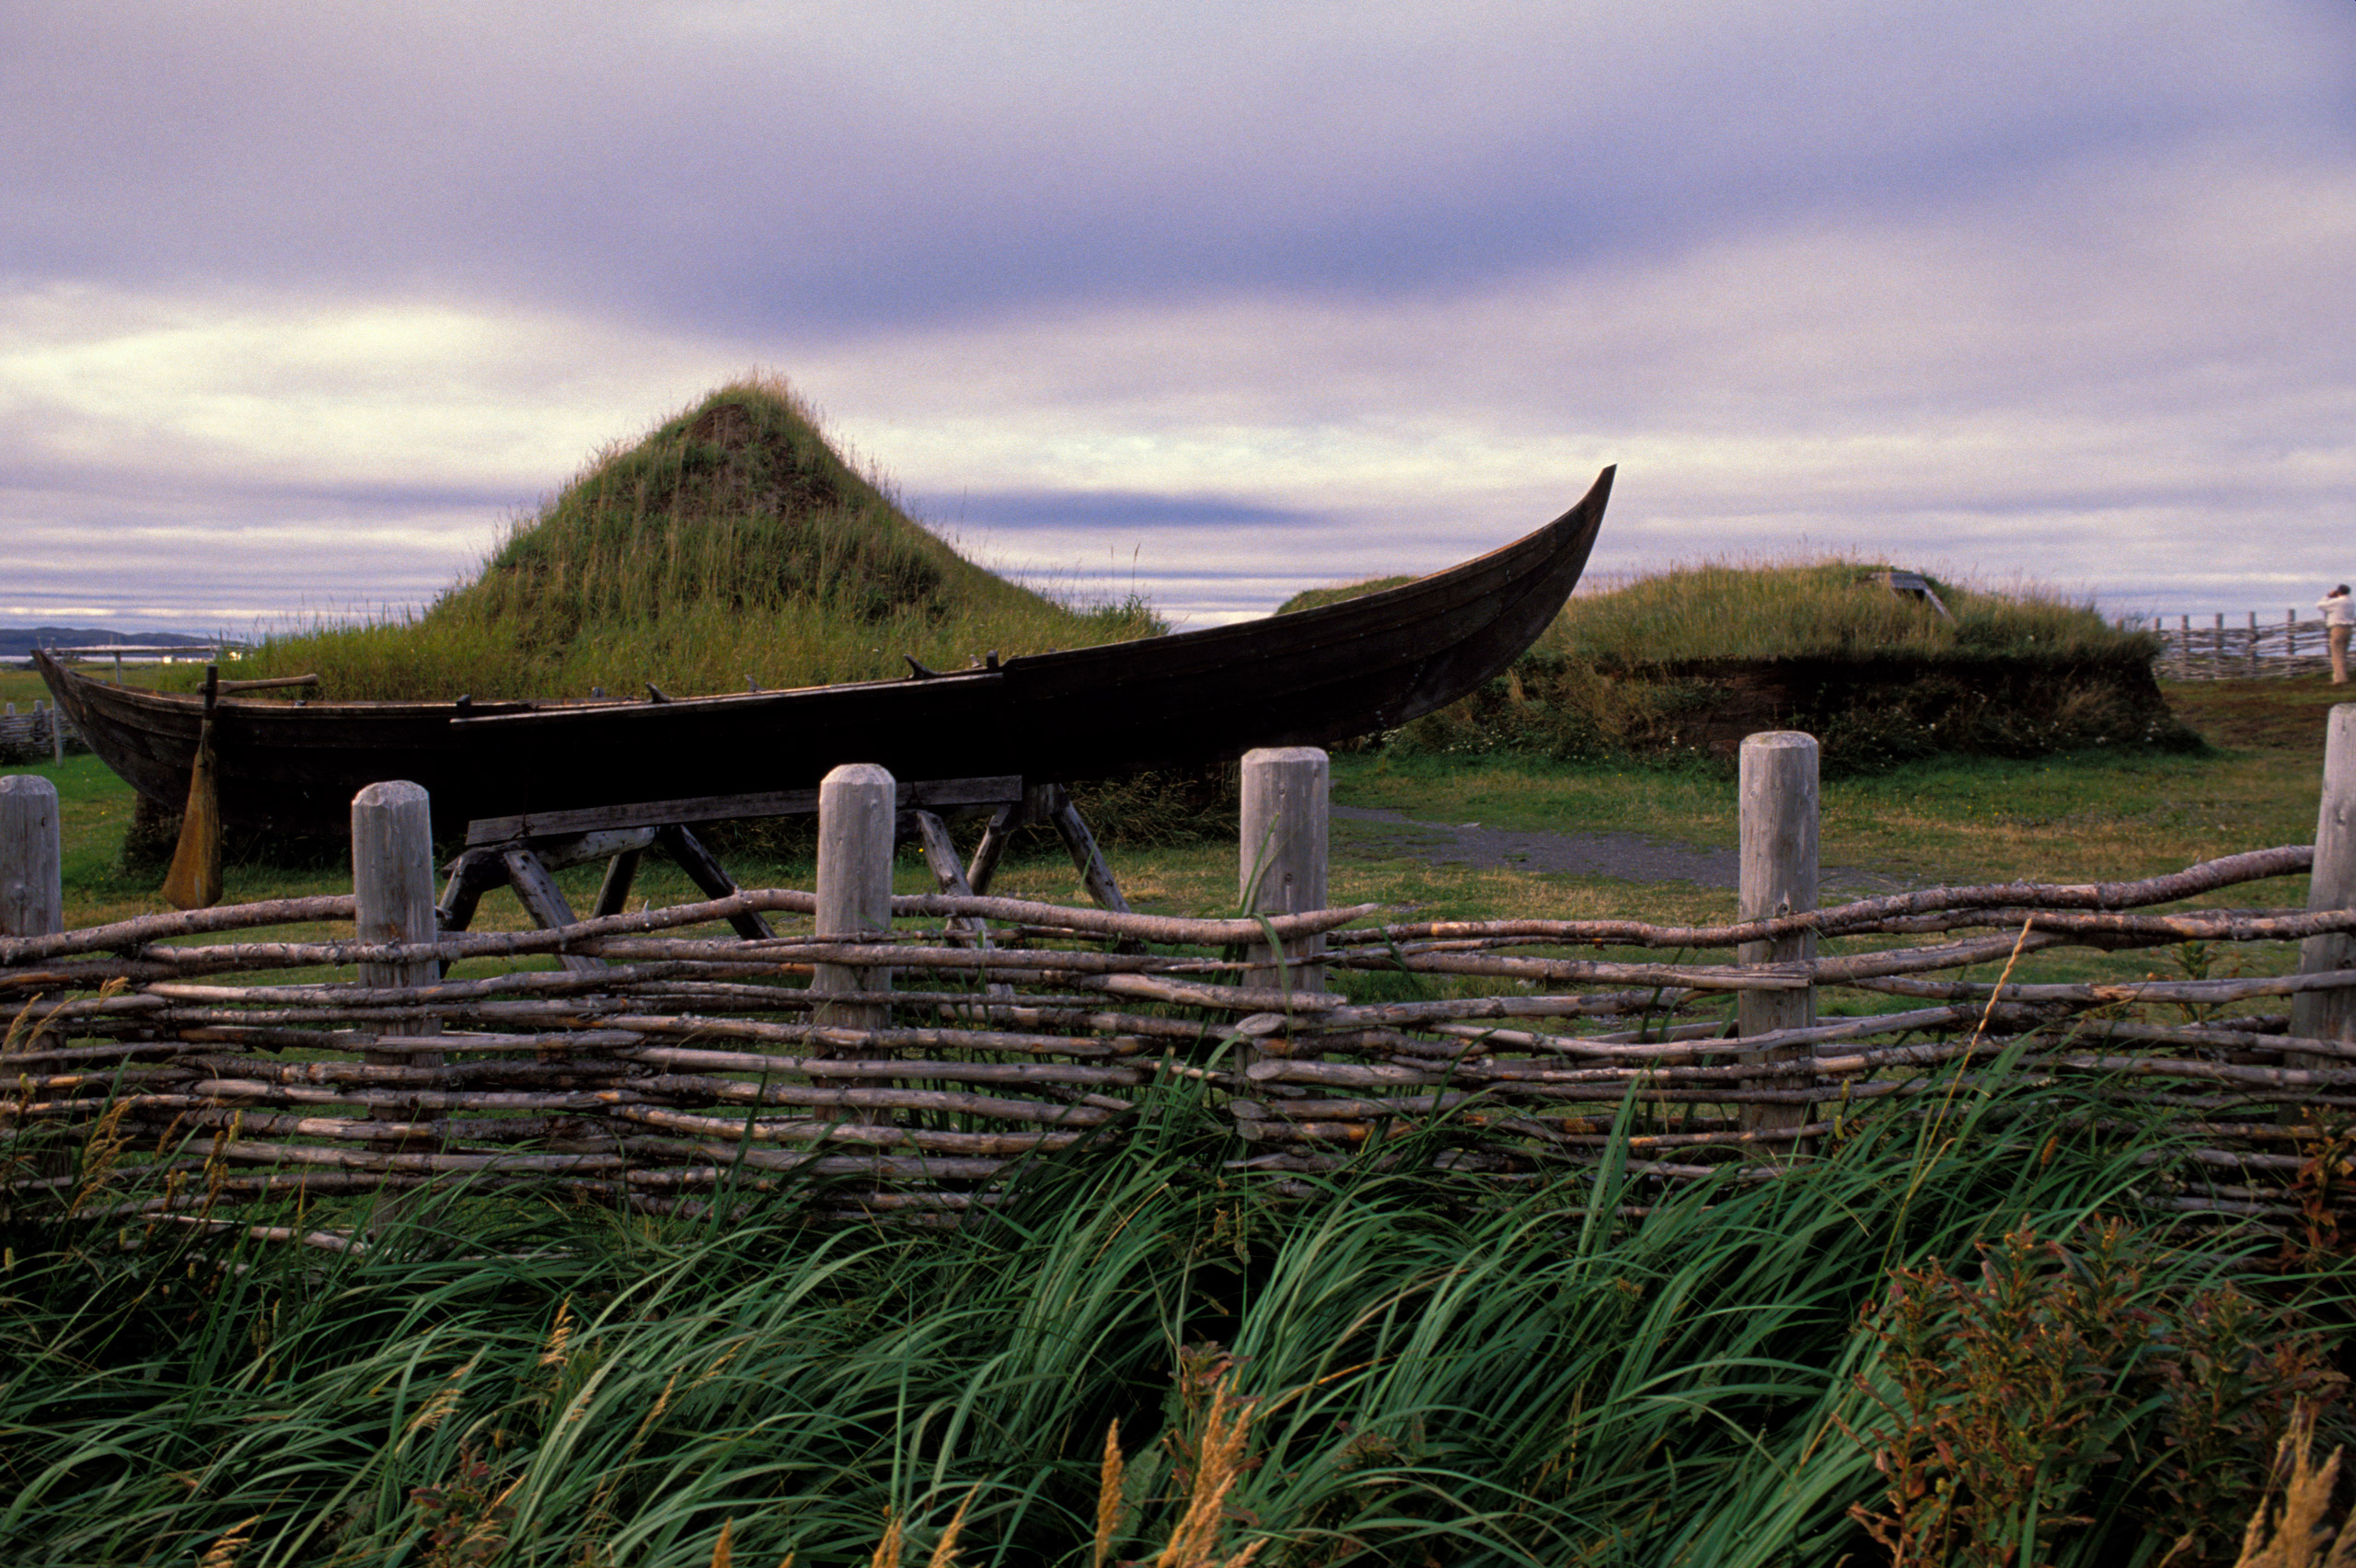 L'anse Aux Meadows National Historic Site in Newfoundland, Canada, Replicas Of Norse Houses From 1000 Years Ago.